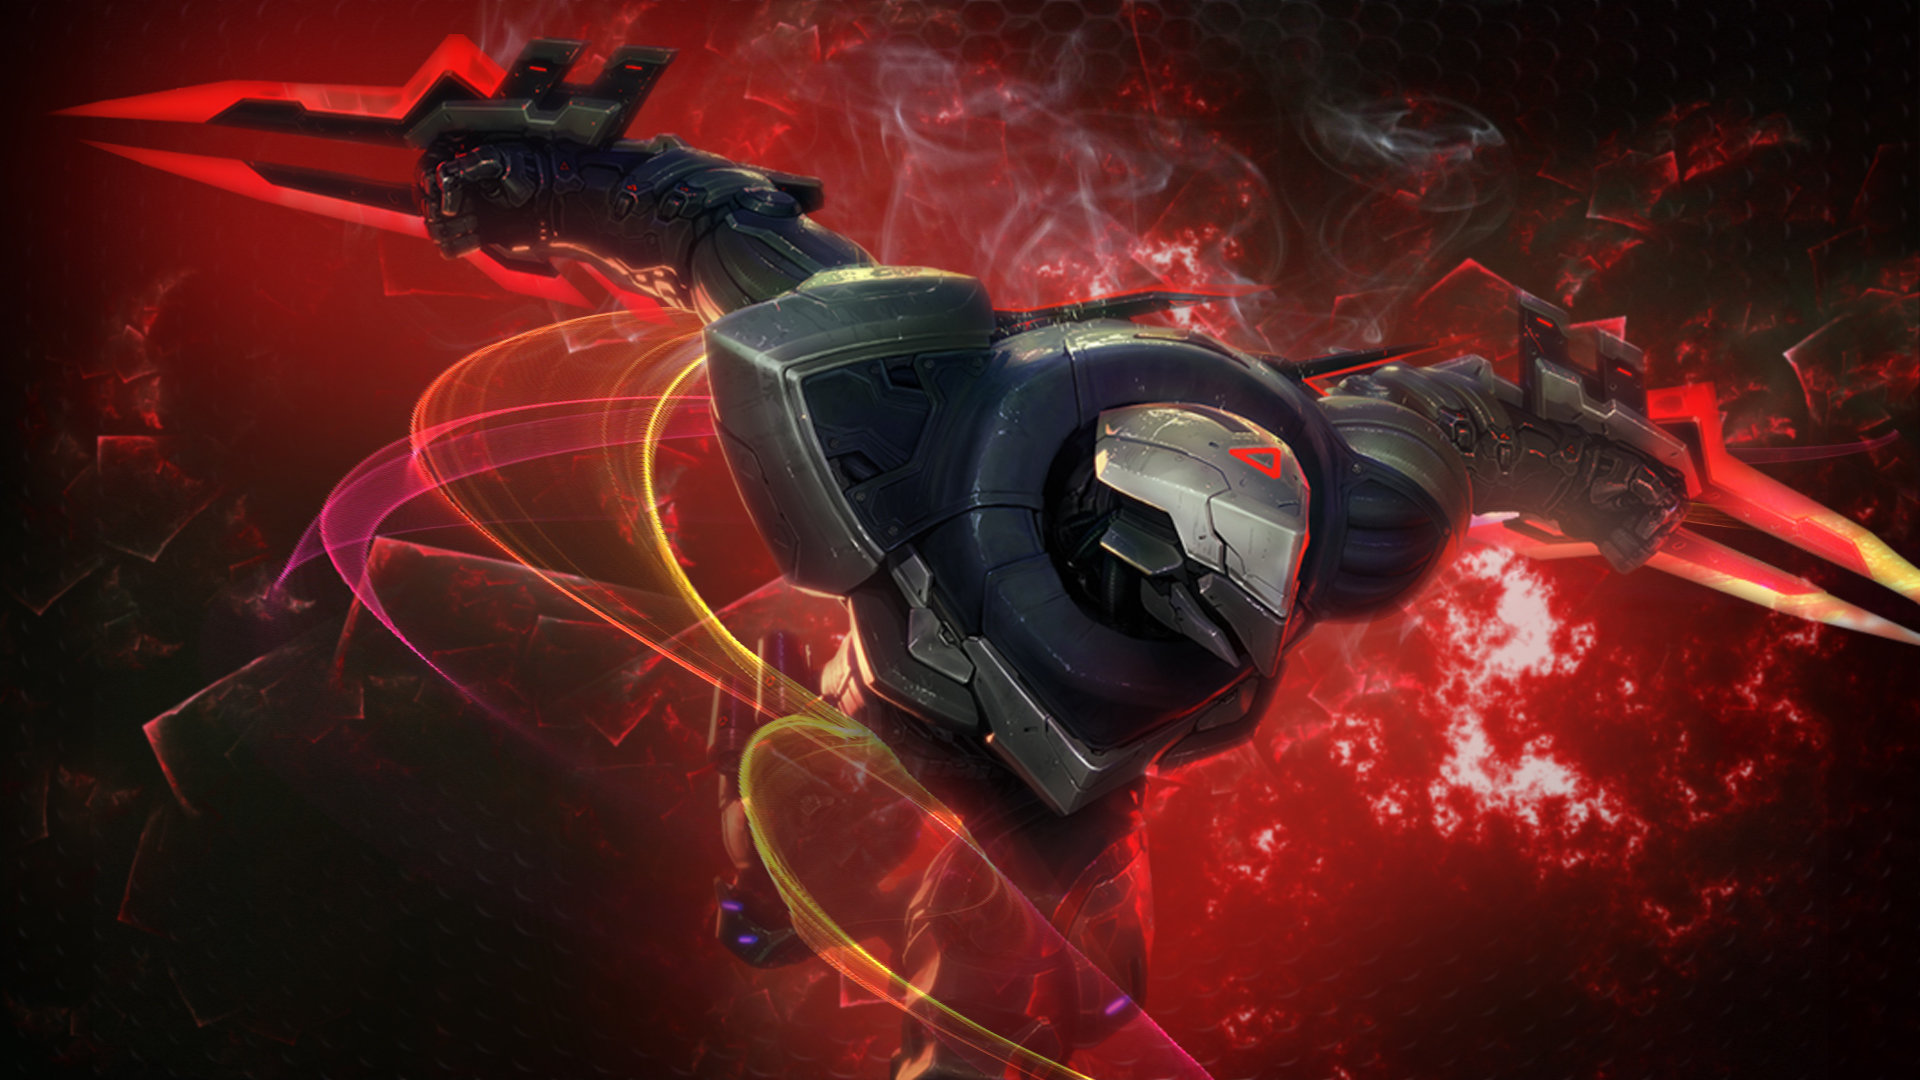 Free Zed League Of Legends High Quality Wallpaper Id